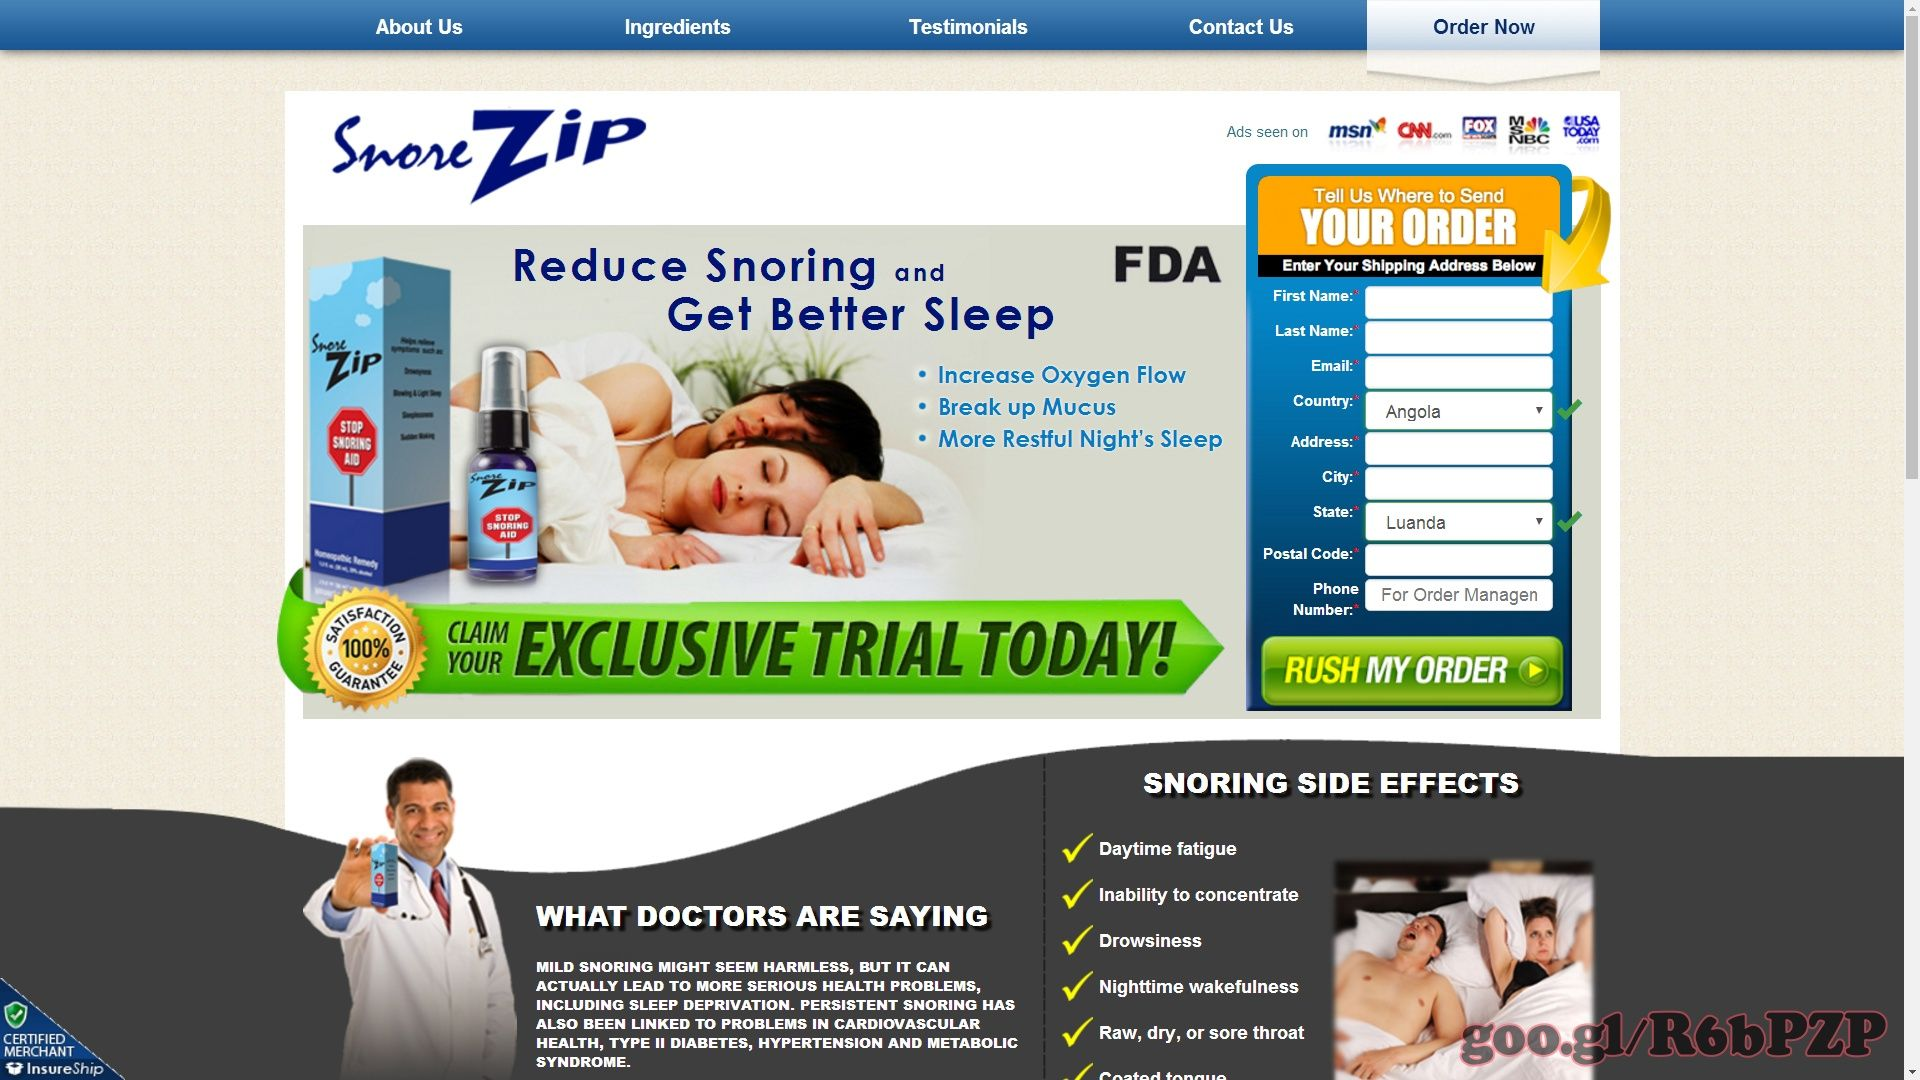 Snorezip General Health Products Snoring English Offers